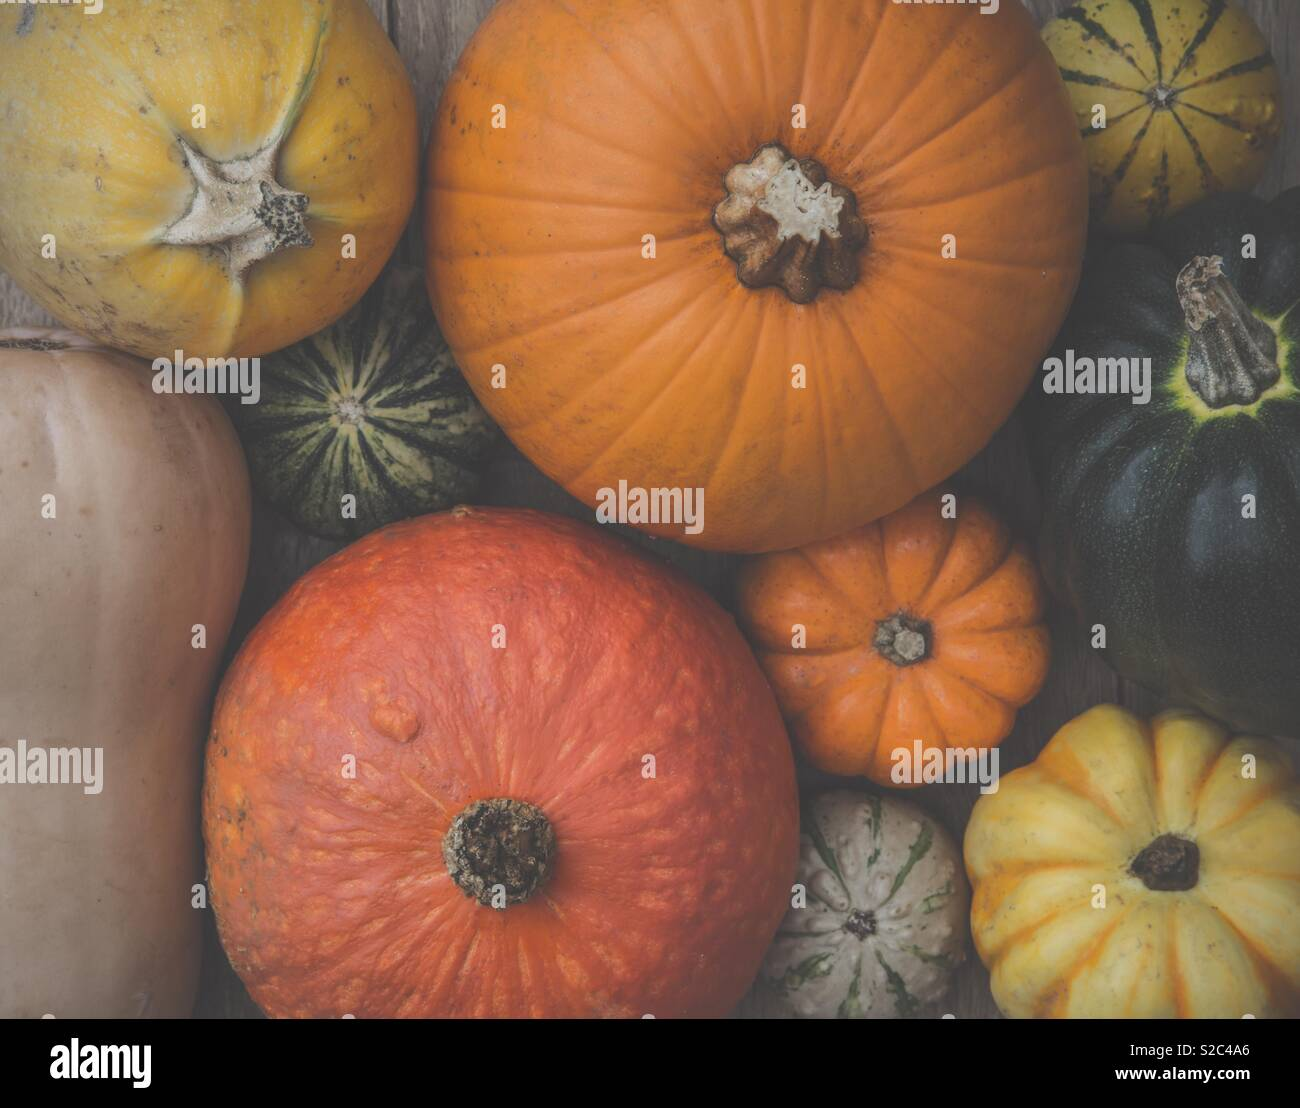 A selection of different pumpkins, gourds and winter squash in a full frame food background image - Stock Image